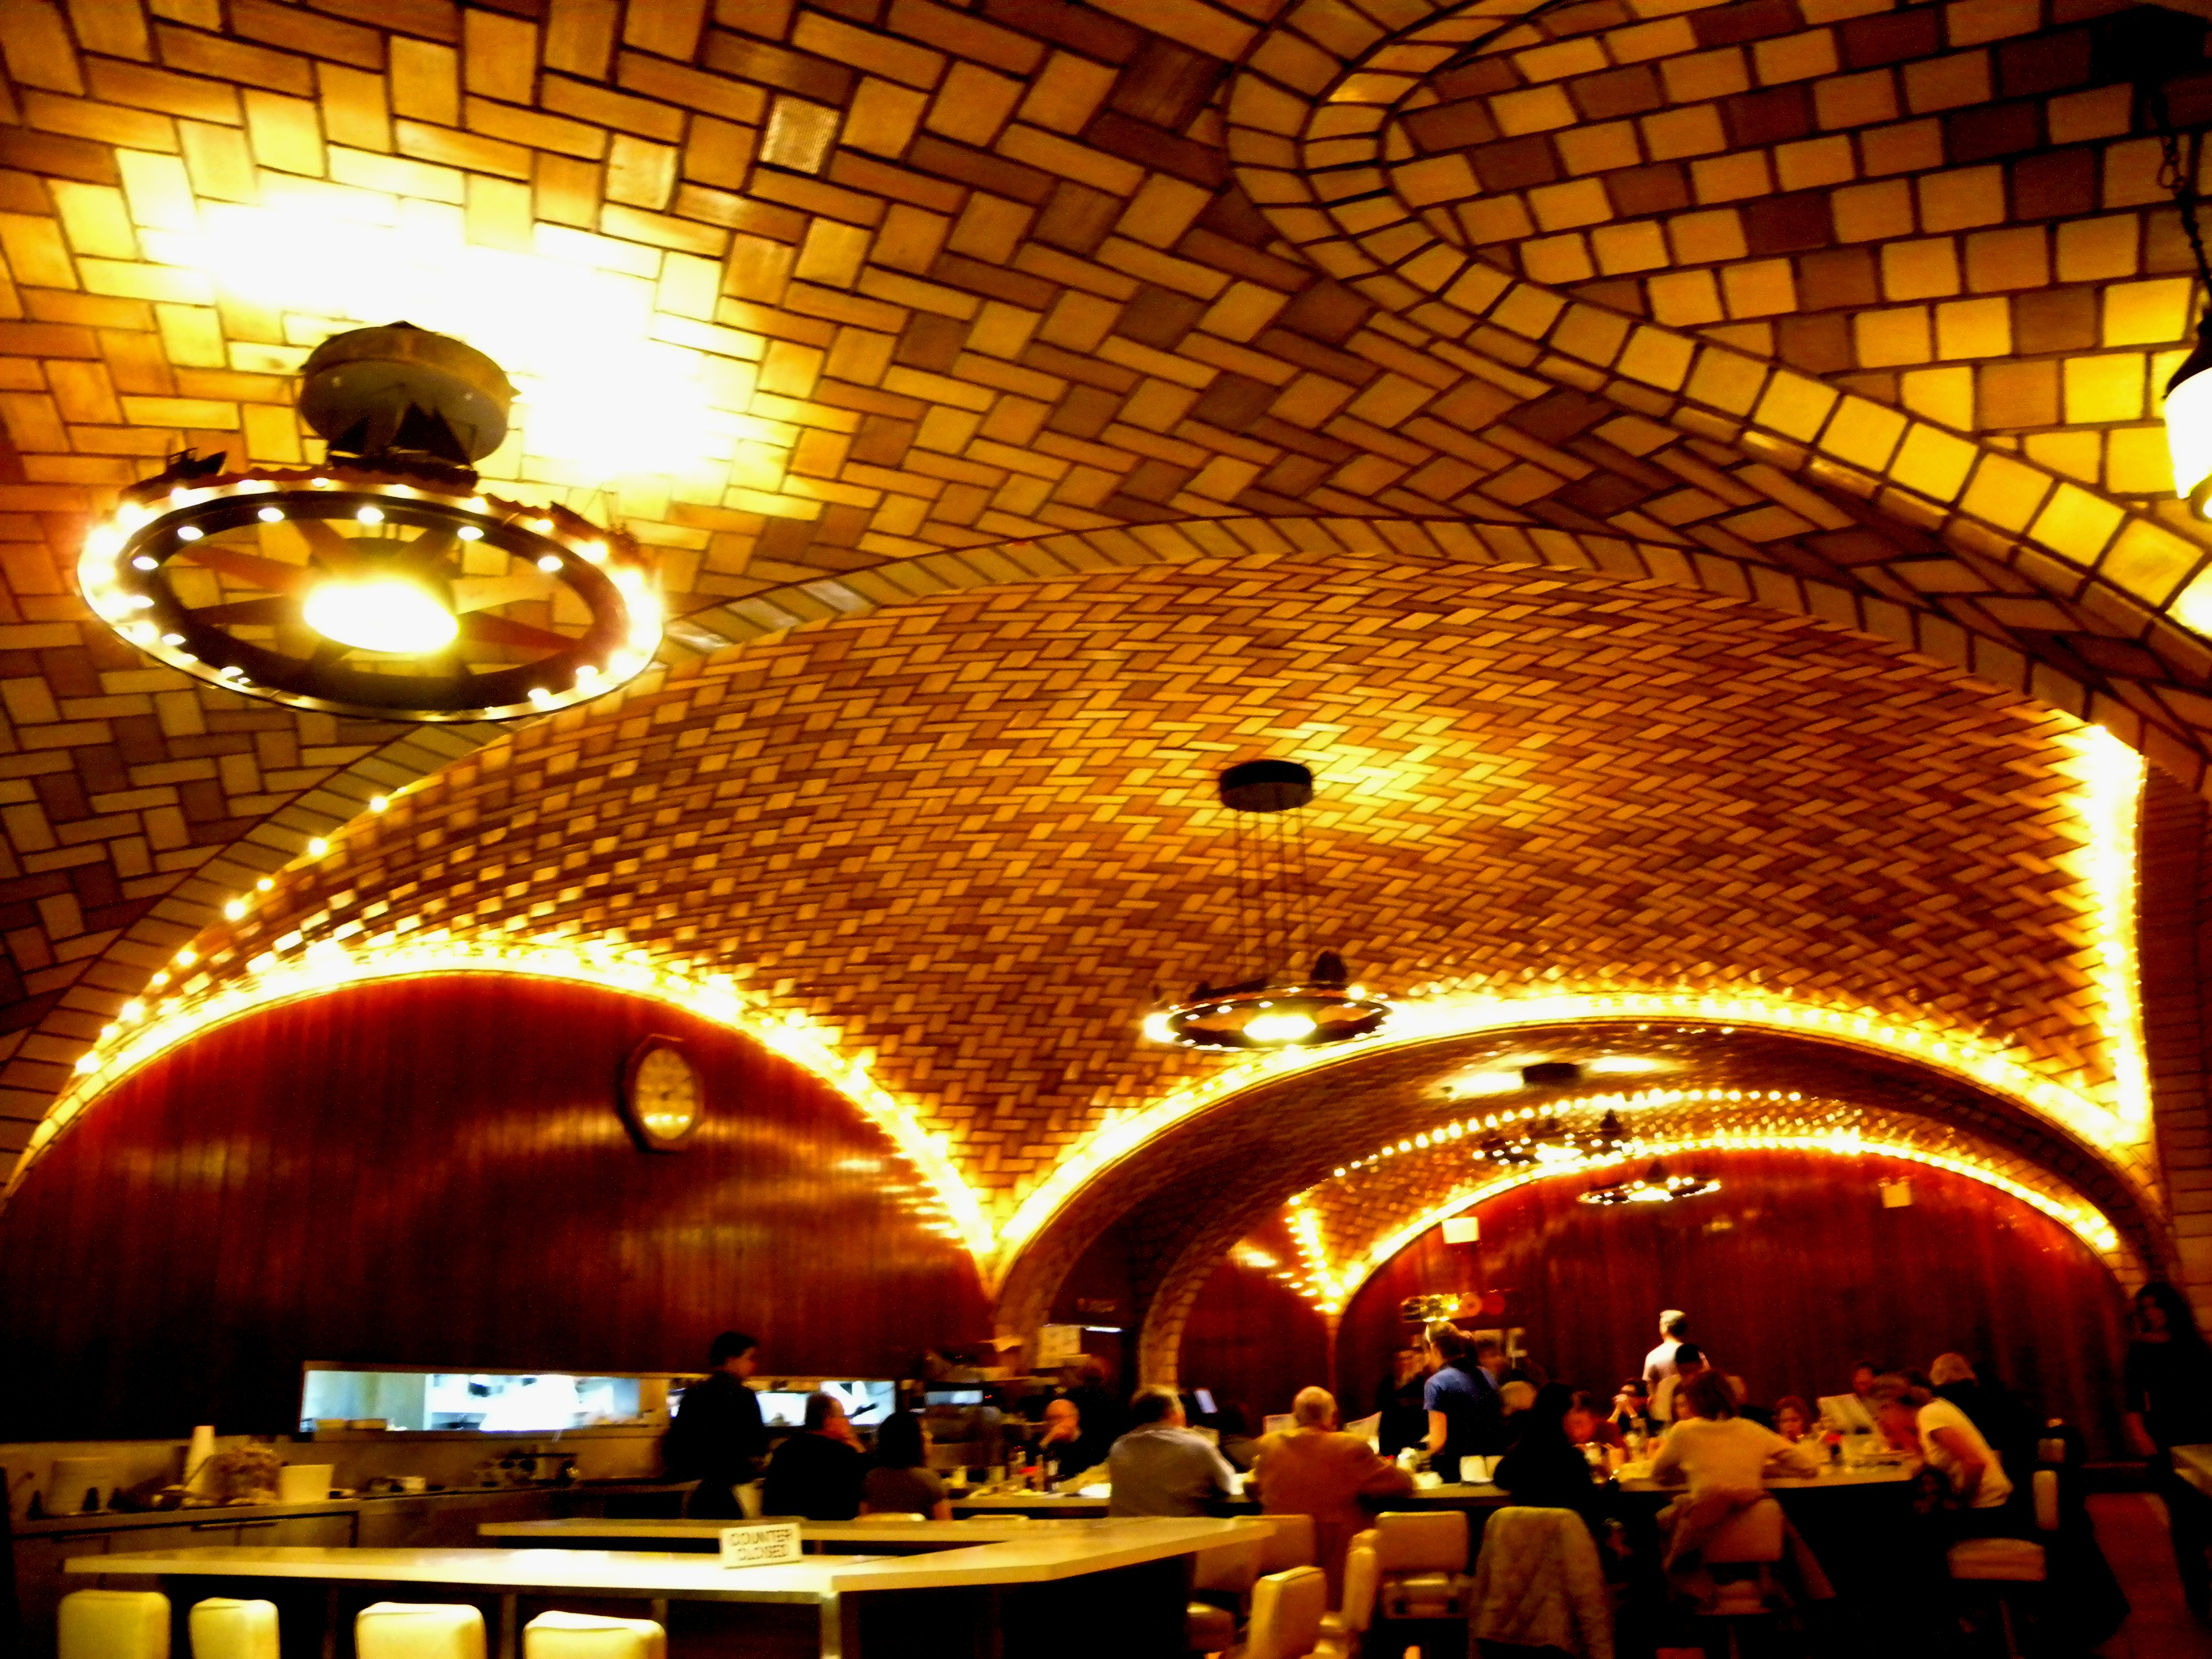 File:Oyster Bar ceiling west jeh.jpg - Wikimedia Commons